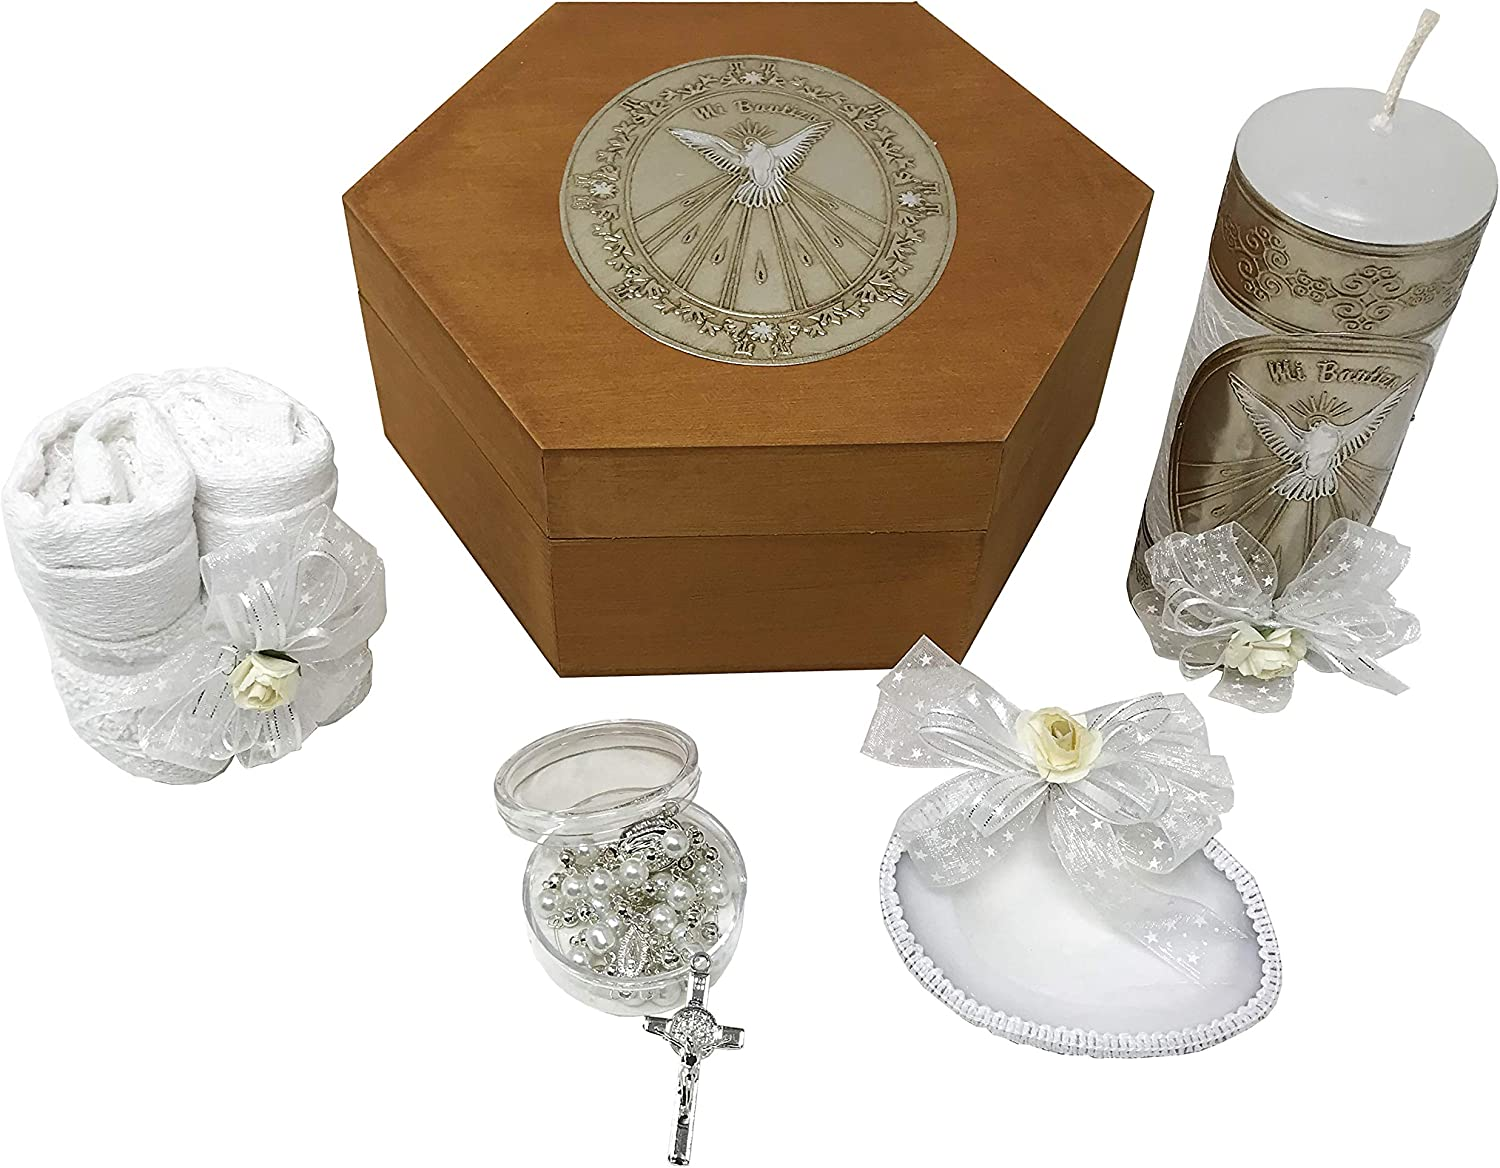 Handmade Catholic Baptism Kit including Medal White cross Towel Candle and Shell Kit De Bautizo Religious Gift